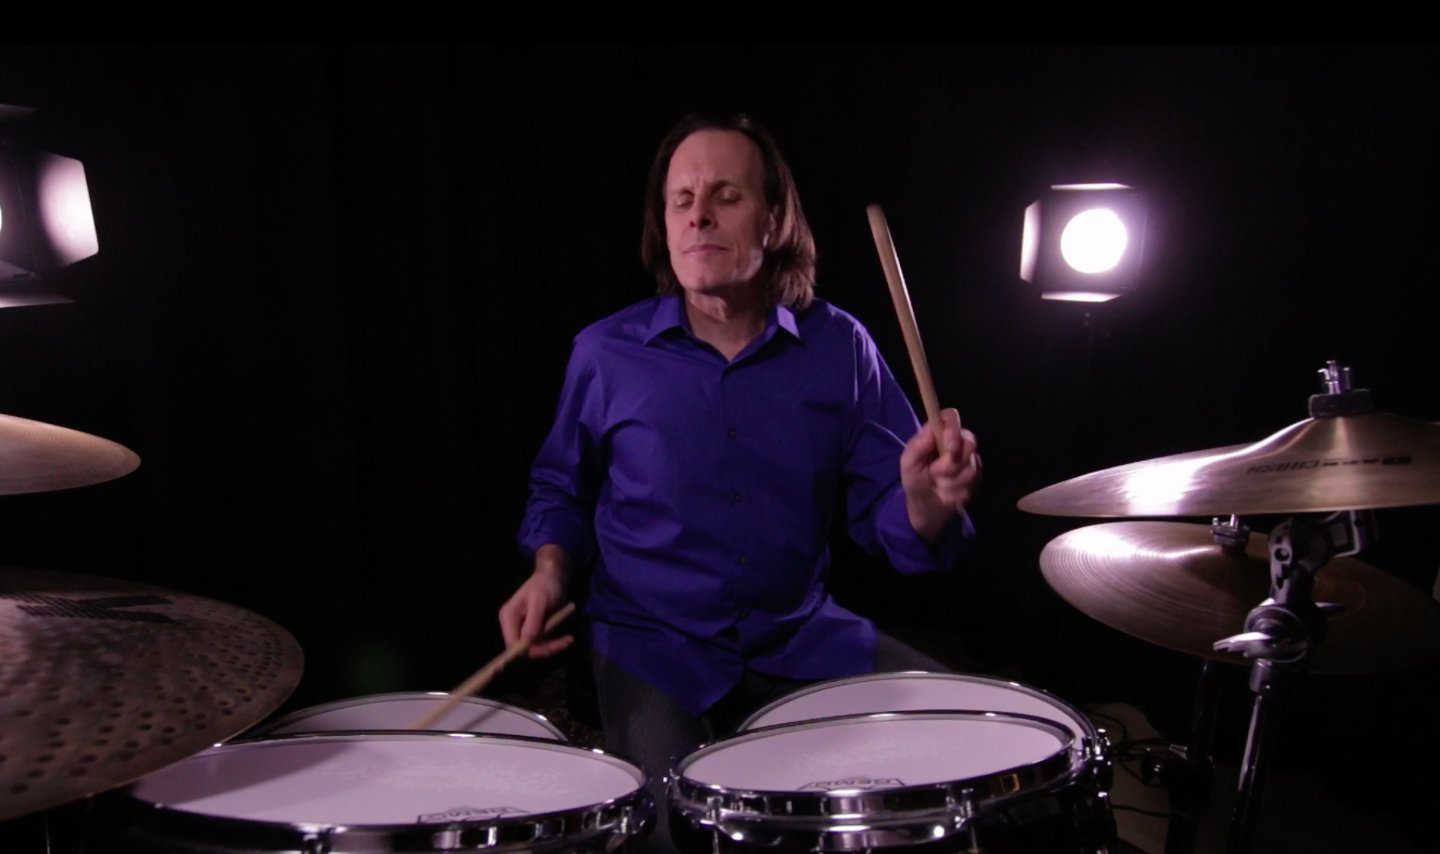 How To Play The Drum Set For Beginners: Part 1